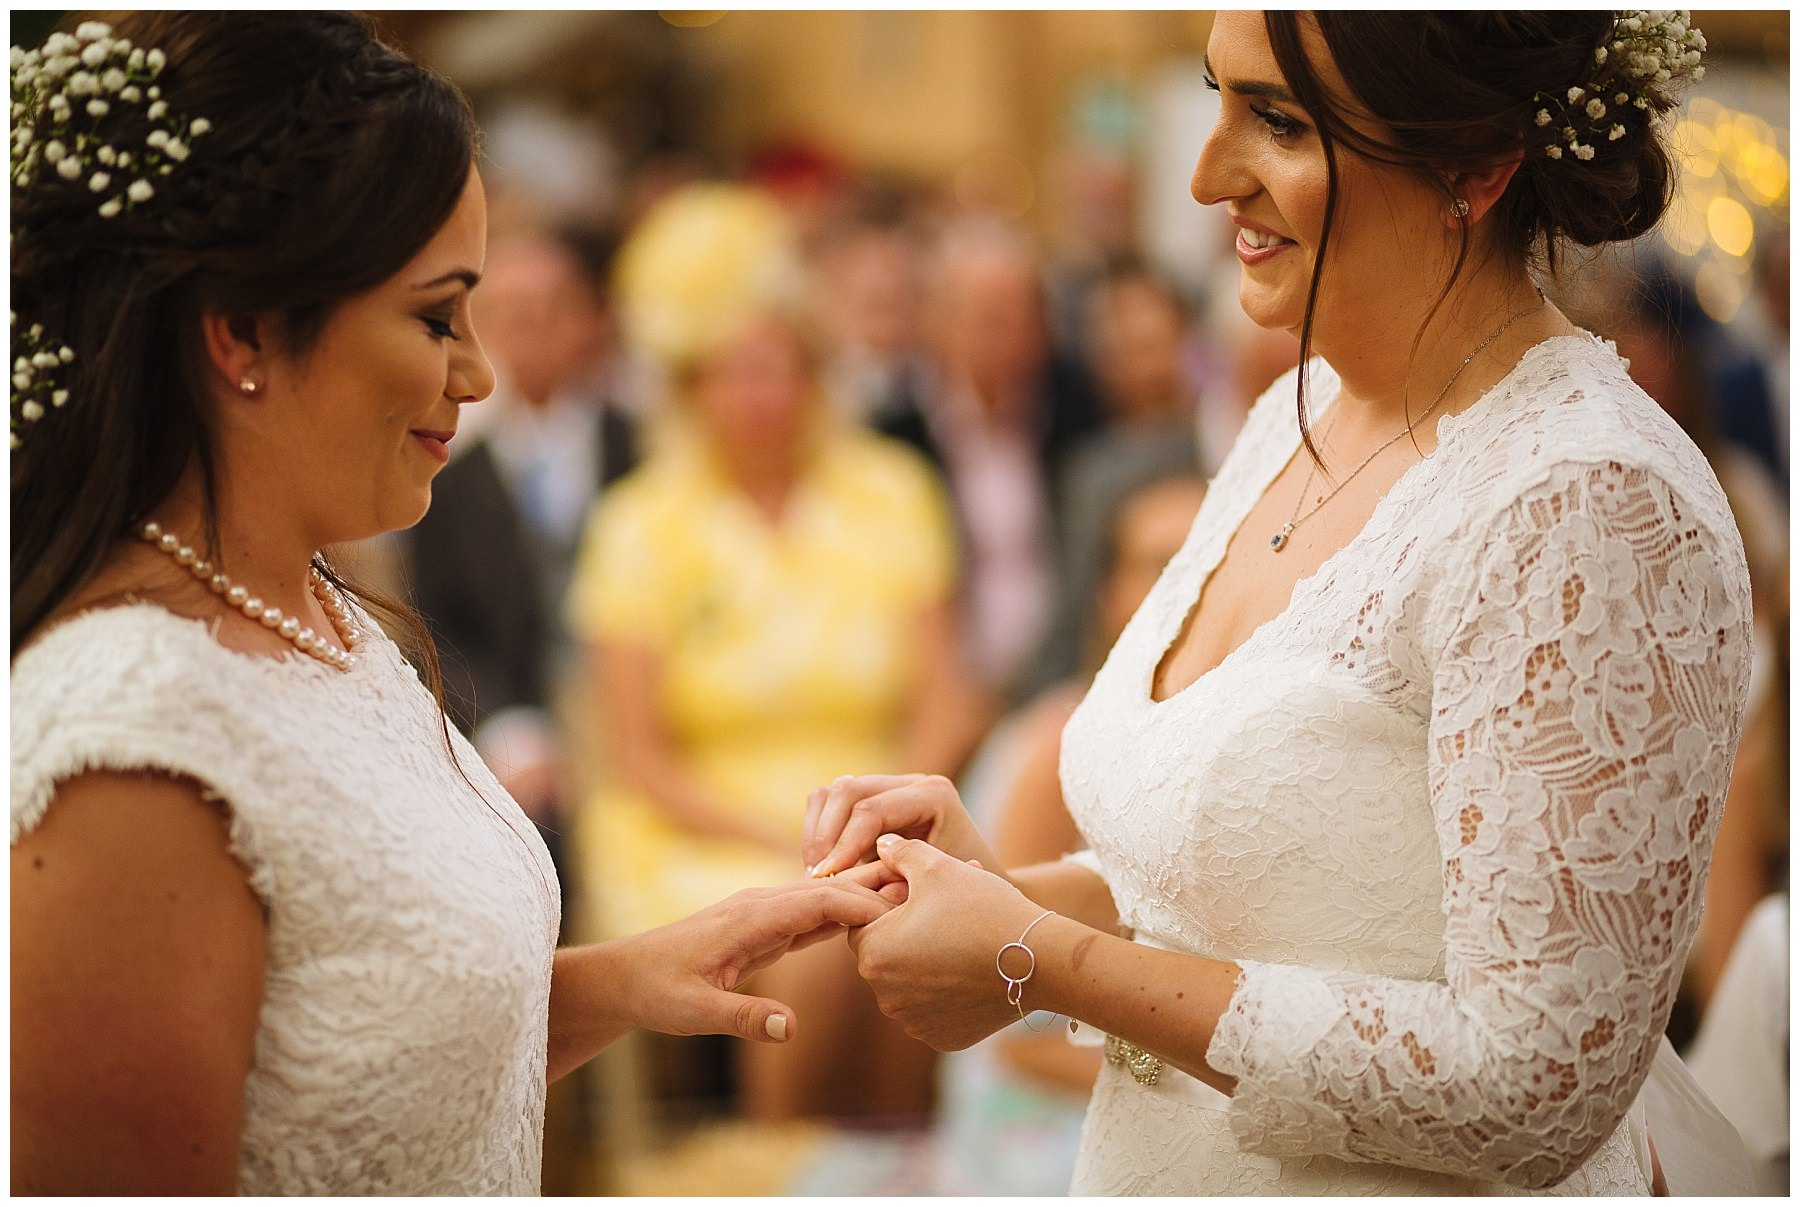 brides exchange rings during wellbeing farm wedding